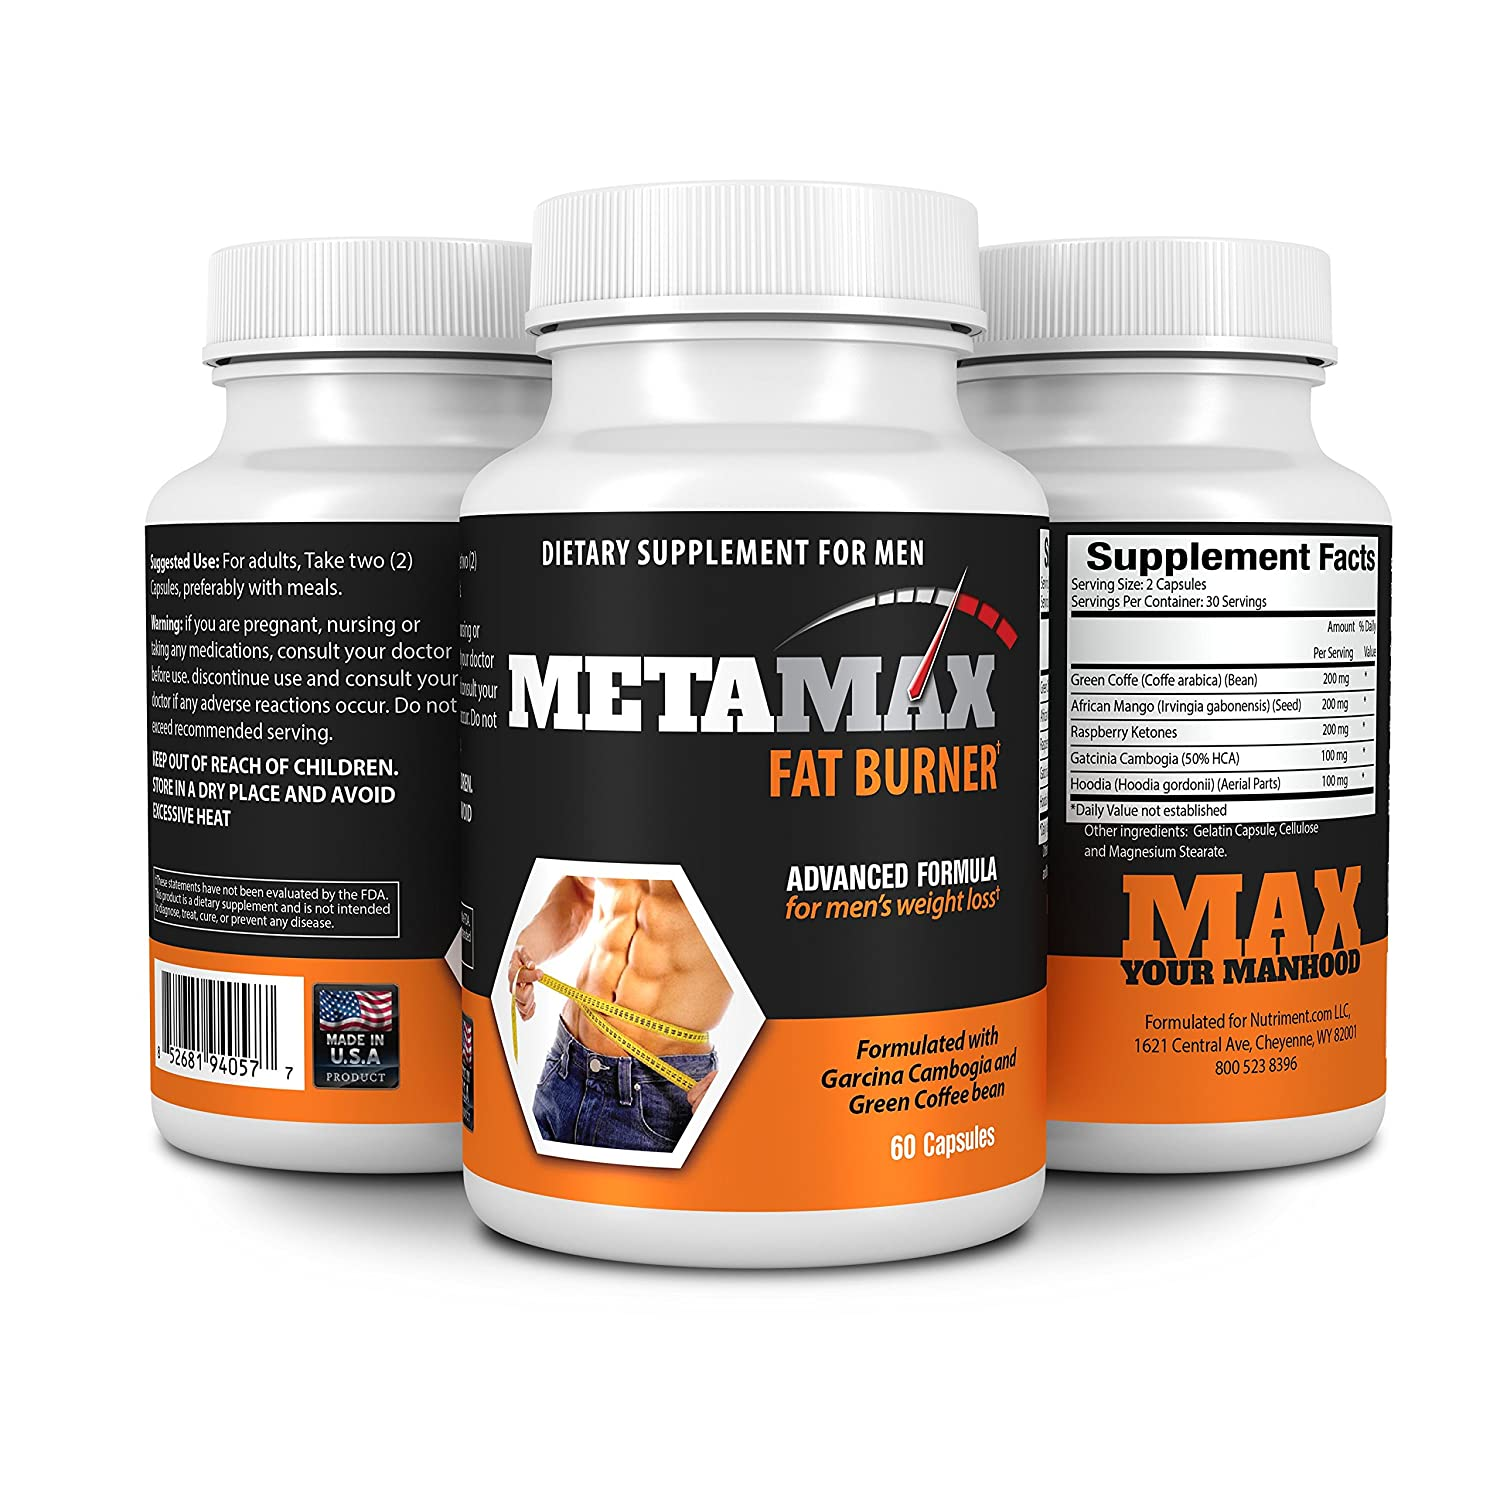 metamax mens weight loss and diet pills formulated with garcinia